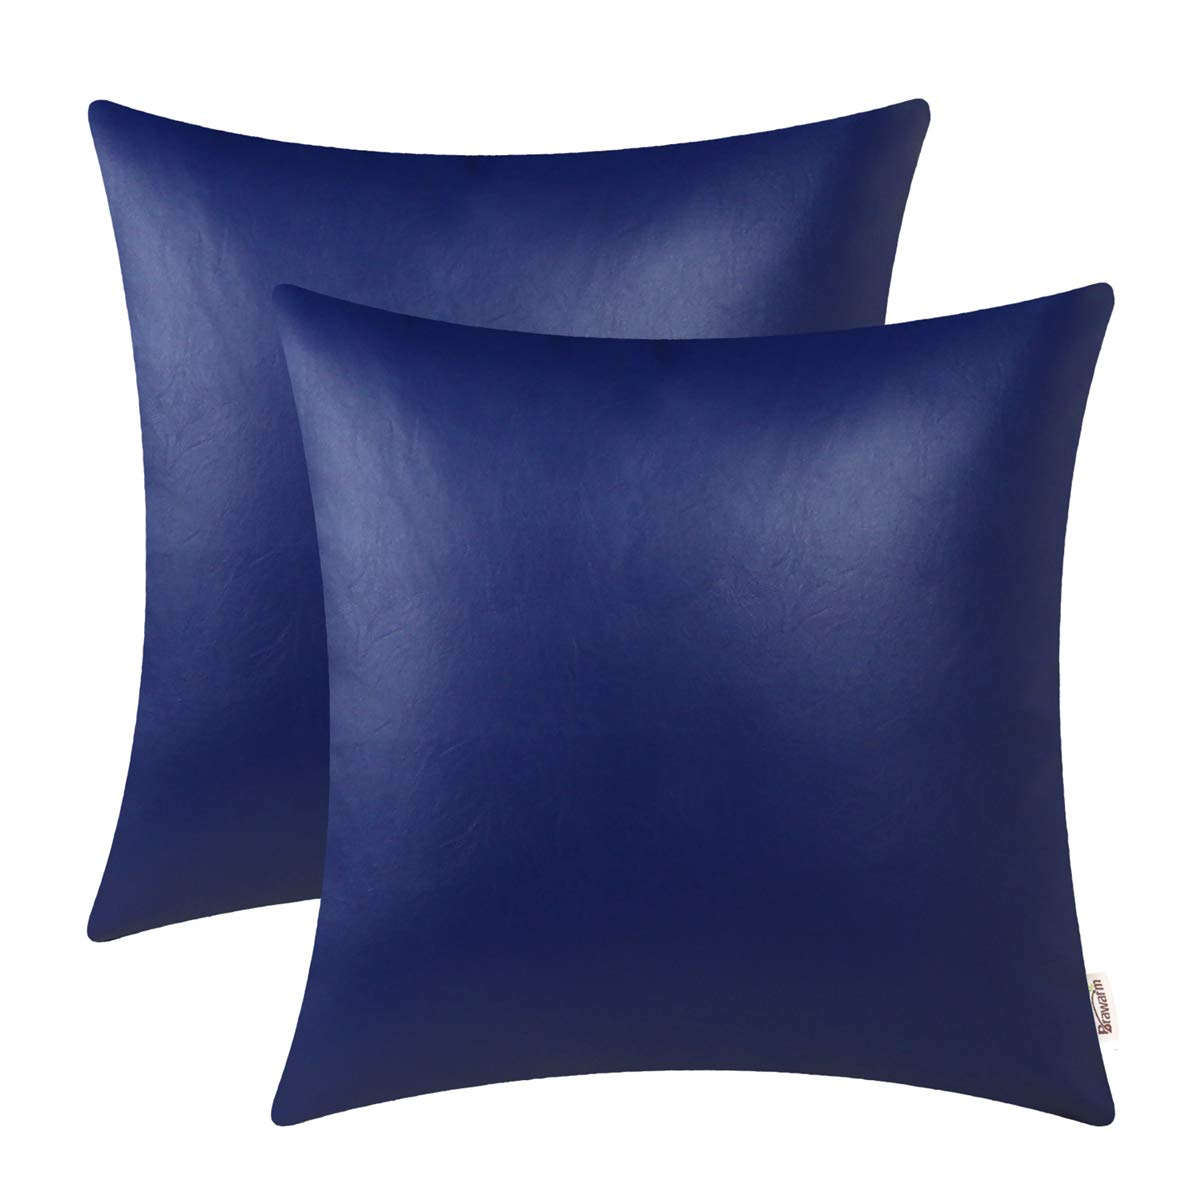 BRAWARM Pack of 2 Cozy Throw Pillow Covers Cases for Couch Sofa Home Decoration Solid Dyed Soft Faux Leather Both Sides 24 X 24 Inches Royal Blue